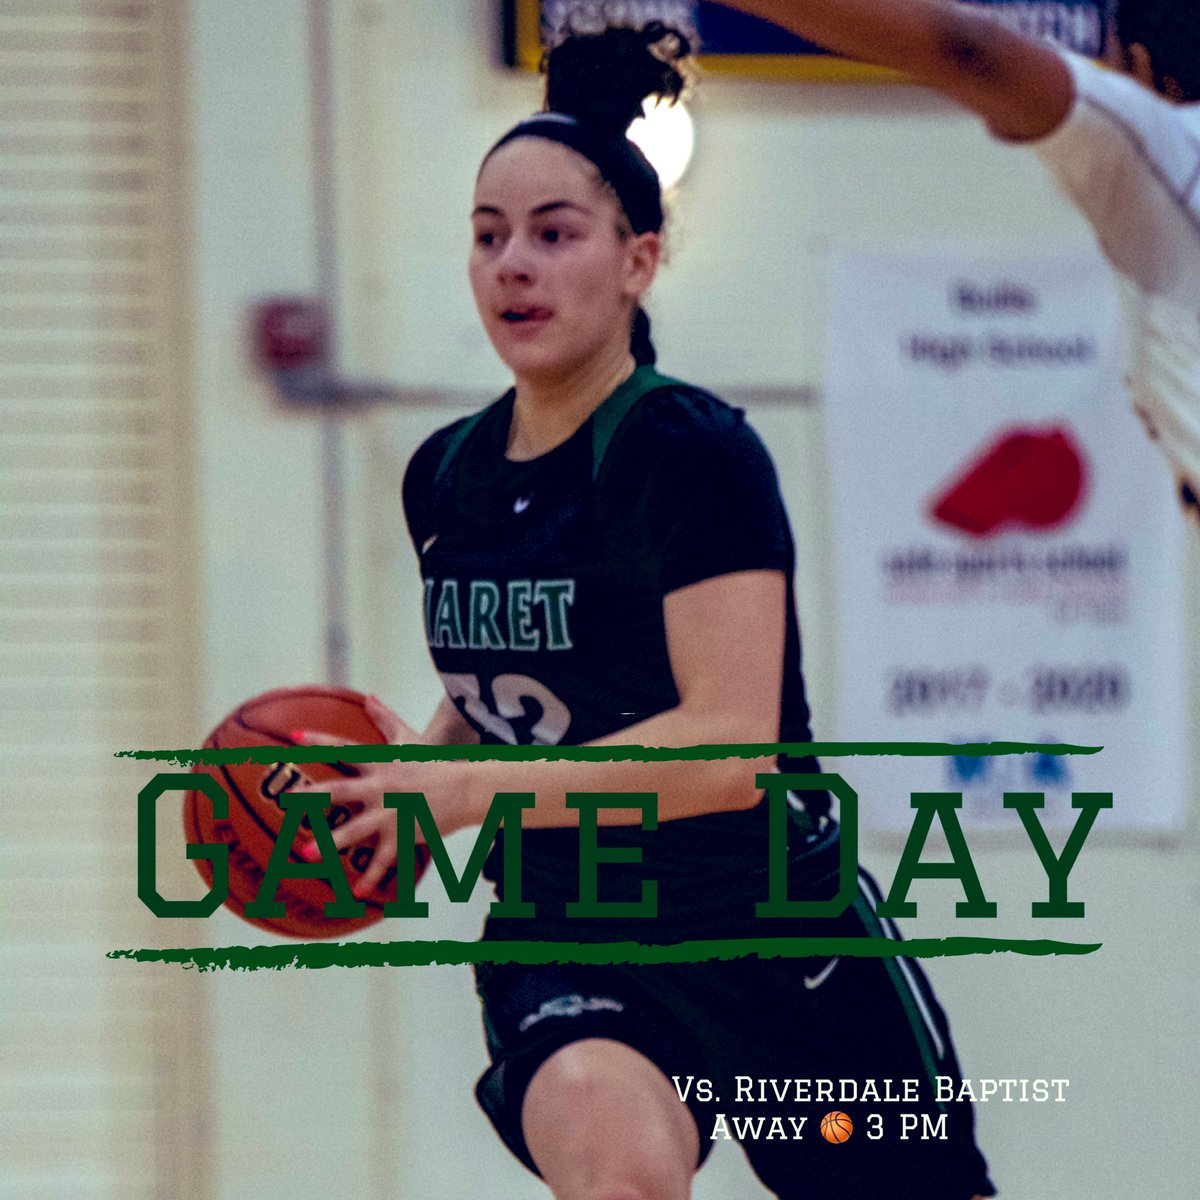 """""""Push yourself again and again. Don't give an inch until the final buzzer sounds""""  Maret takes on @WashPostHS #1 @RBSCrusadersGBB today at Riverdale. Appreciate the opportunity in the DMV to play great competition all season long to grow our game 🧱 📸: '22 PG Page Greenburg"""